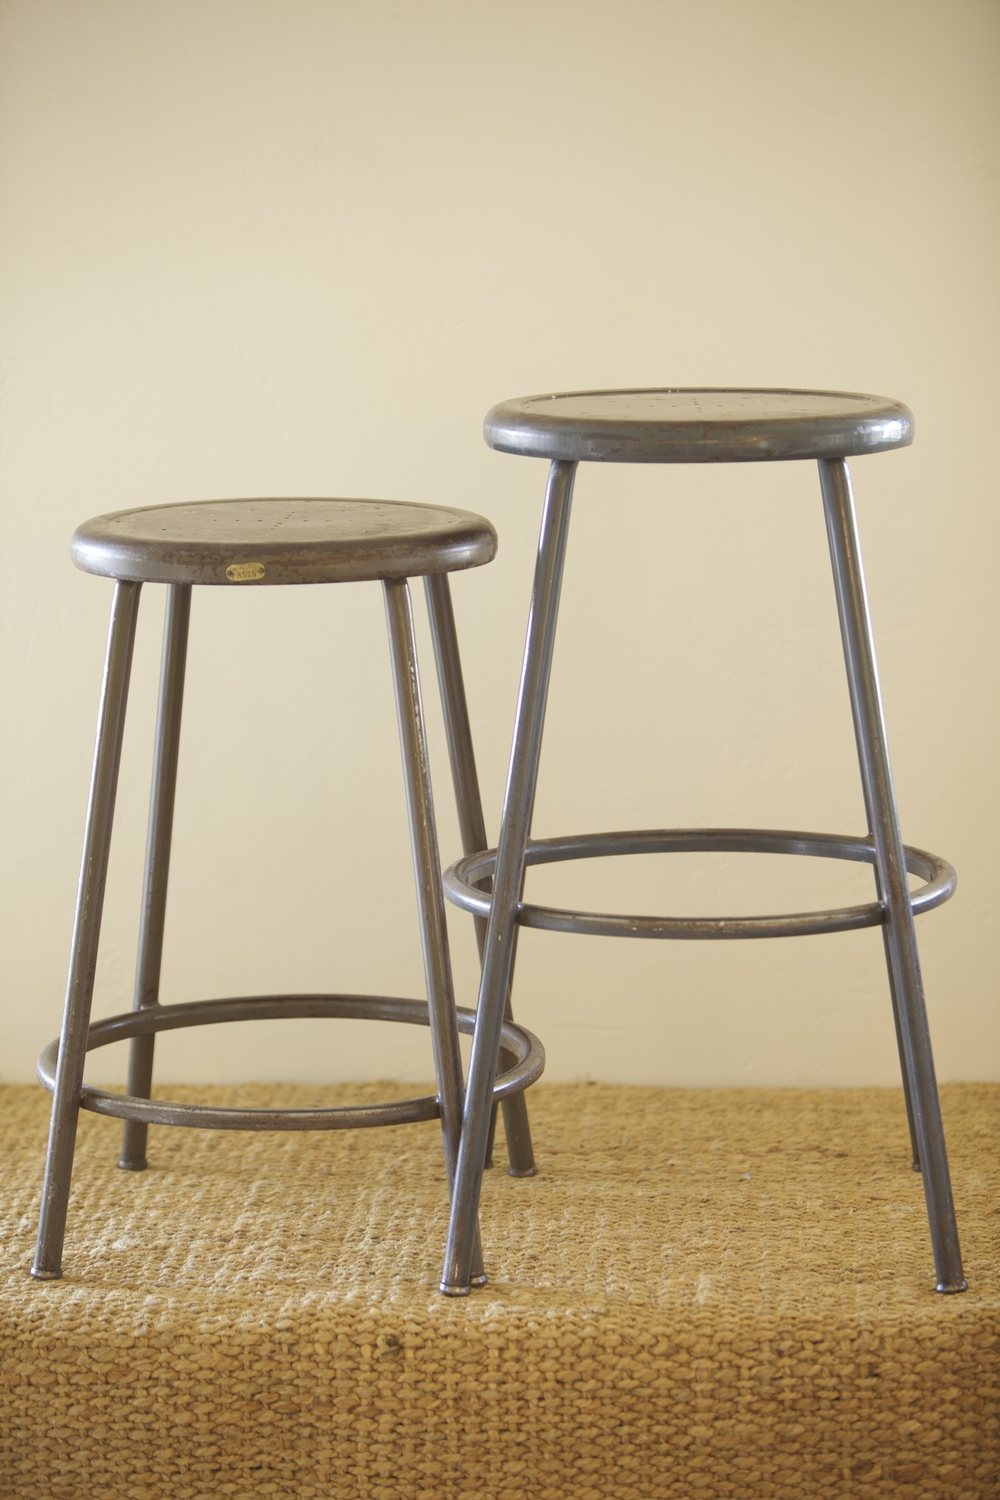 Schoolhouse Stool $20